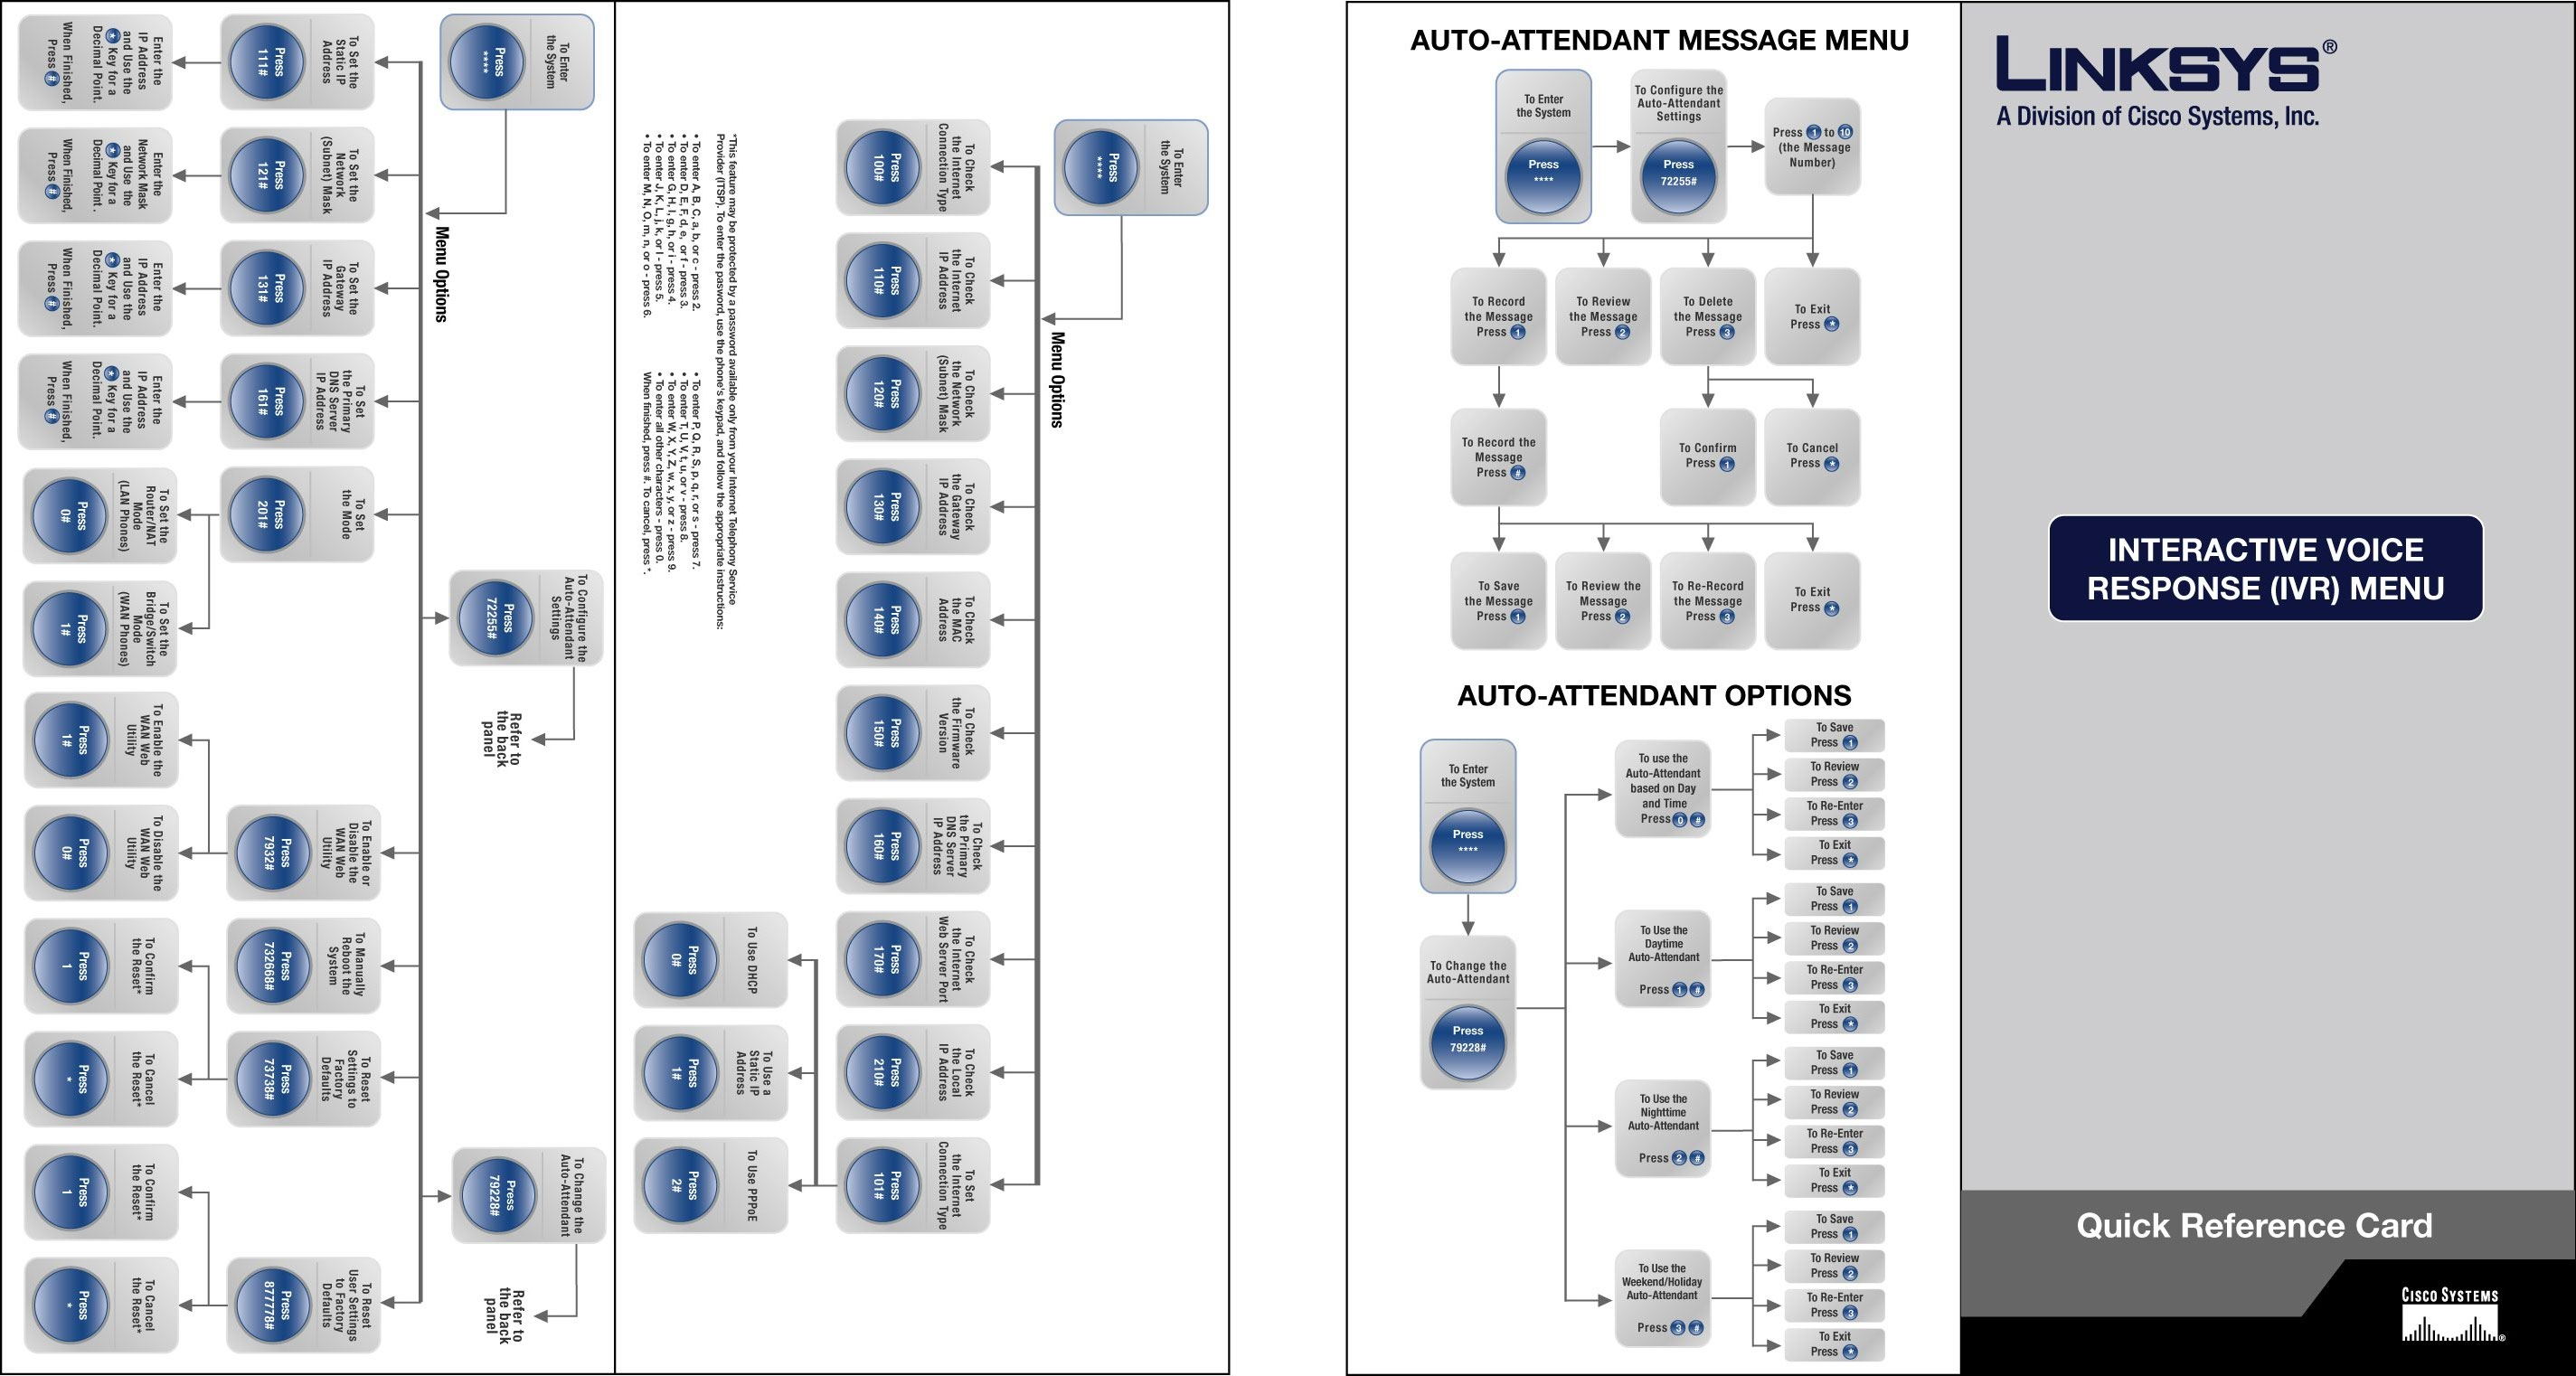 Spa 9000 Ip Pbx Spa9000 Business Voip Office Phone System Setup Guide Features Of Telephone Wiring Diagram 1 Auto Attendant Quick Install